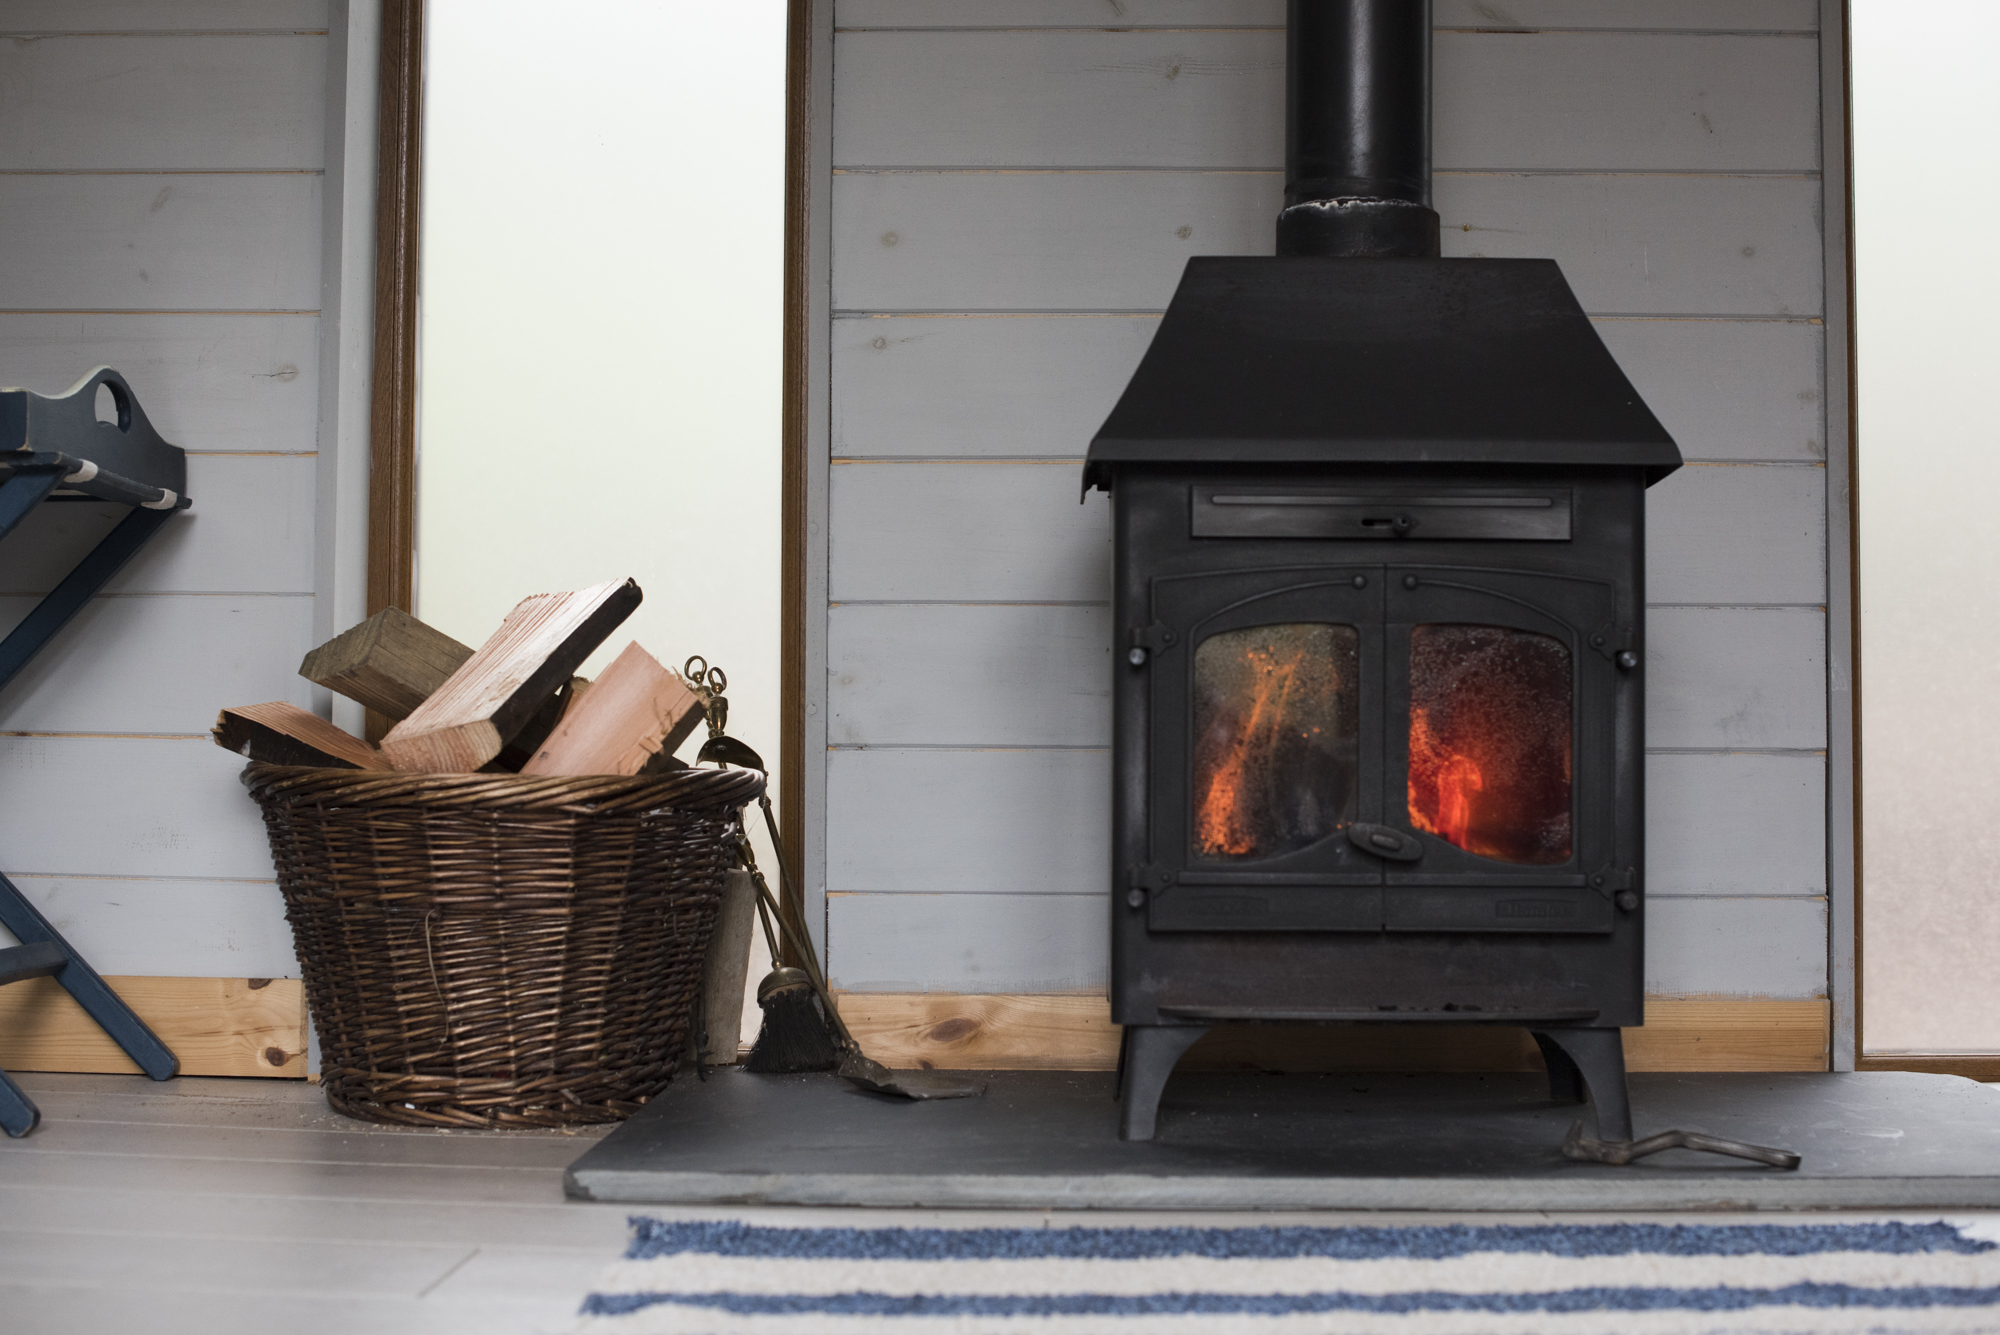 Glamping with a wood-burner